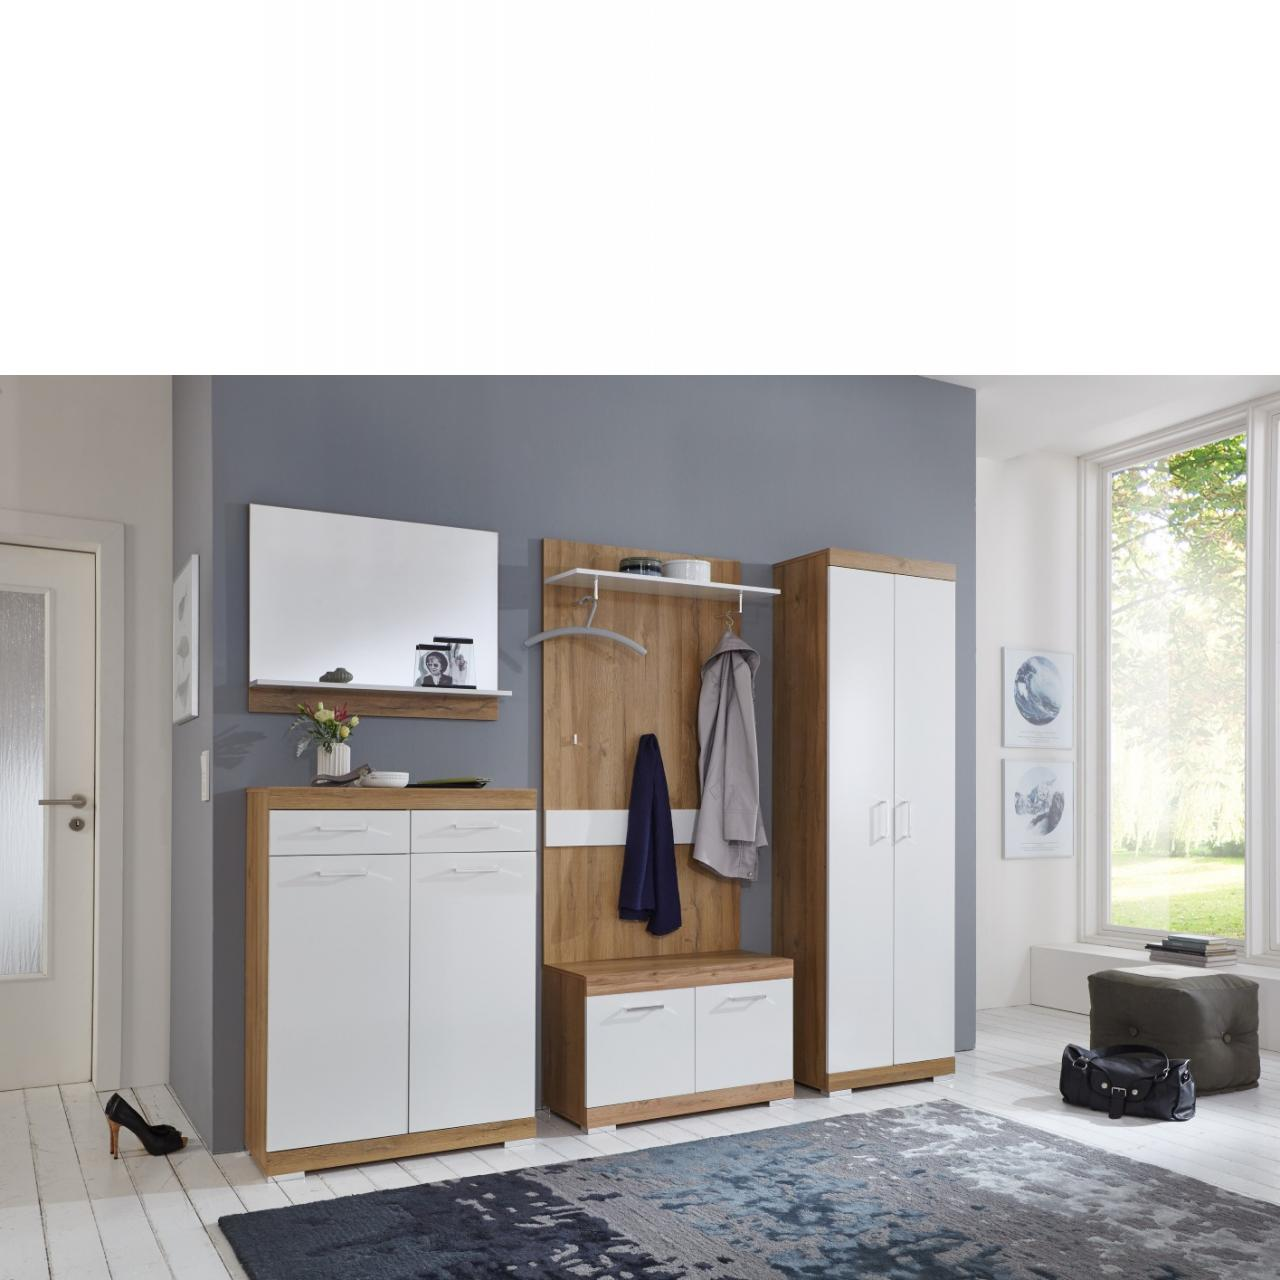 garderobenbank juno wei 2 t ren 80 cm breit m bel j hnichen center gmbh. Black Bedroom Furniture Sets. Home Design Ideas